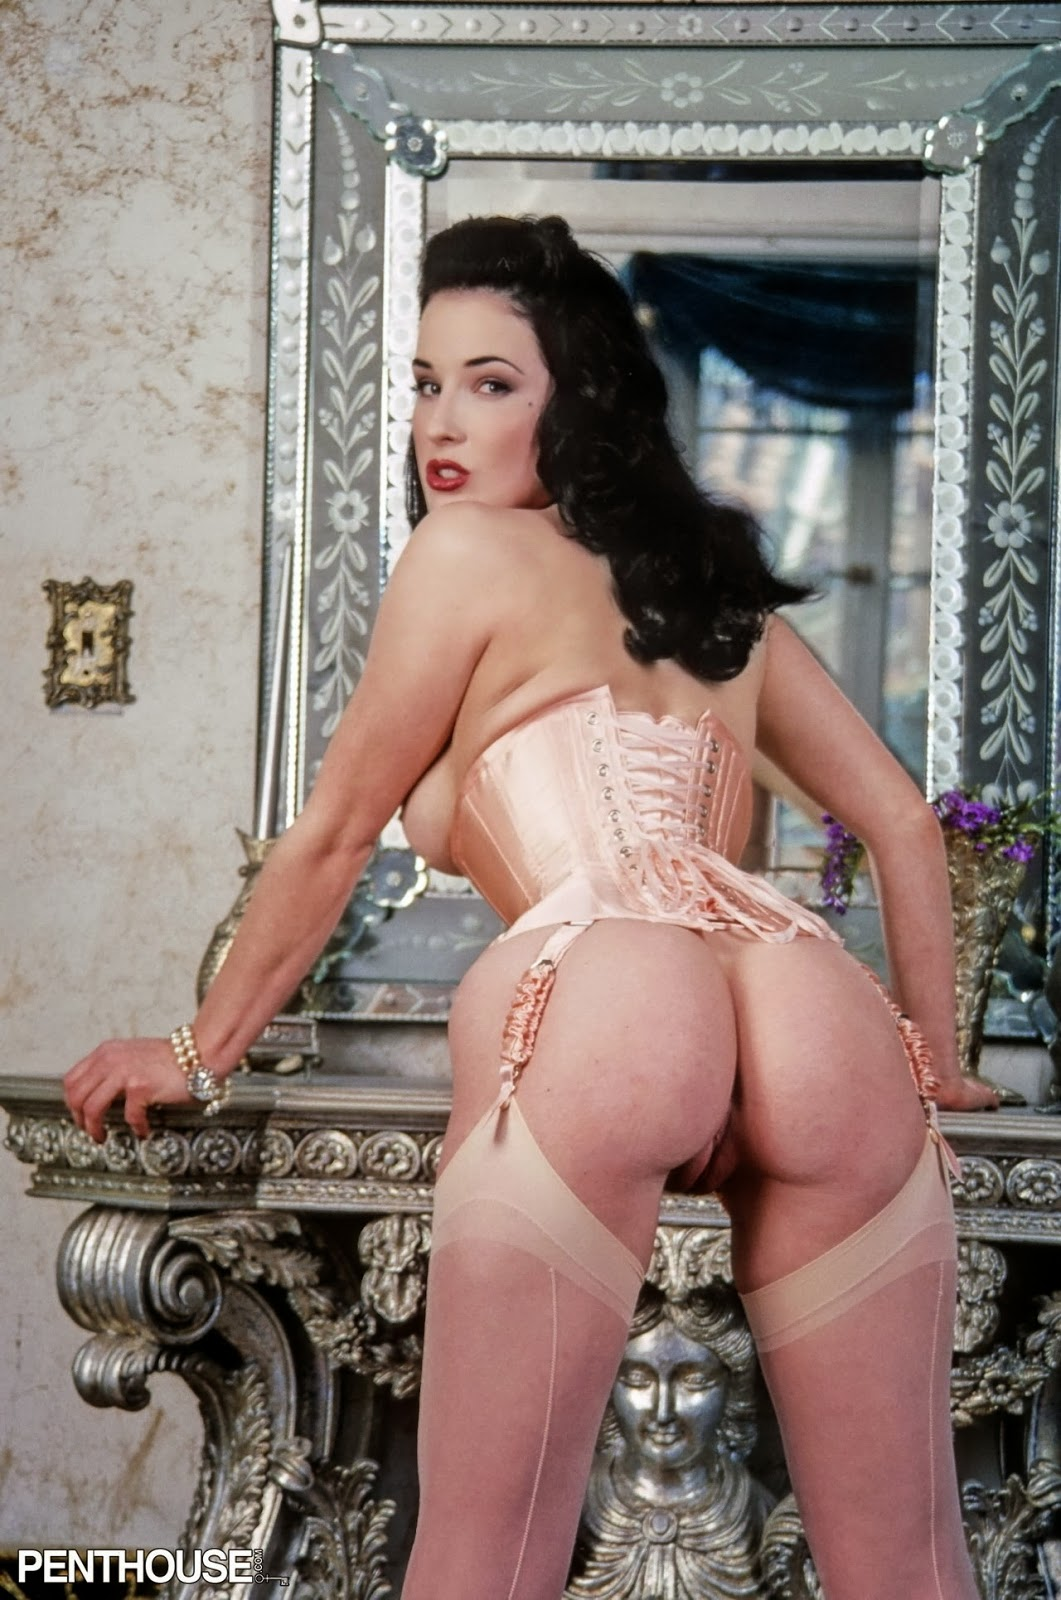 Remarkable, very Dita von teese lesbian sex video talented